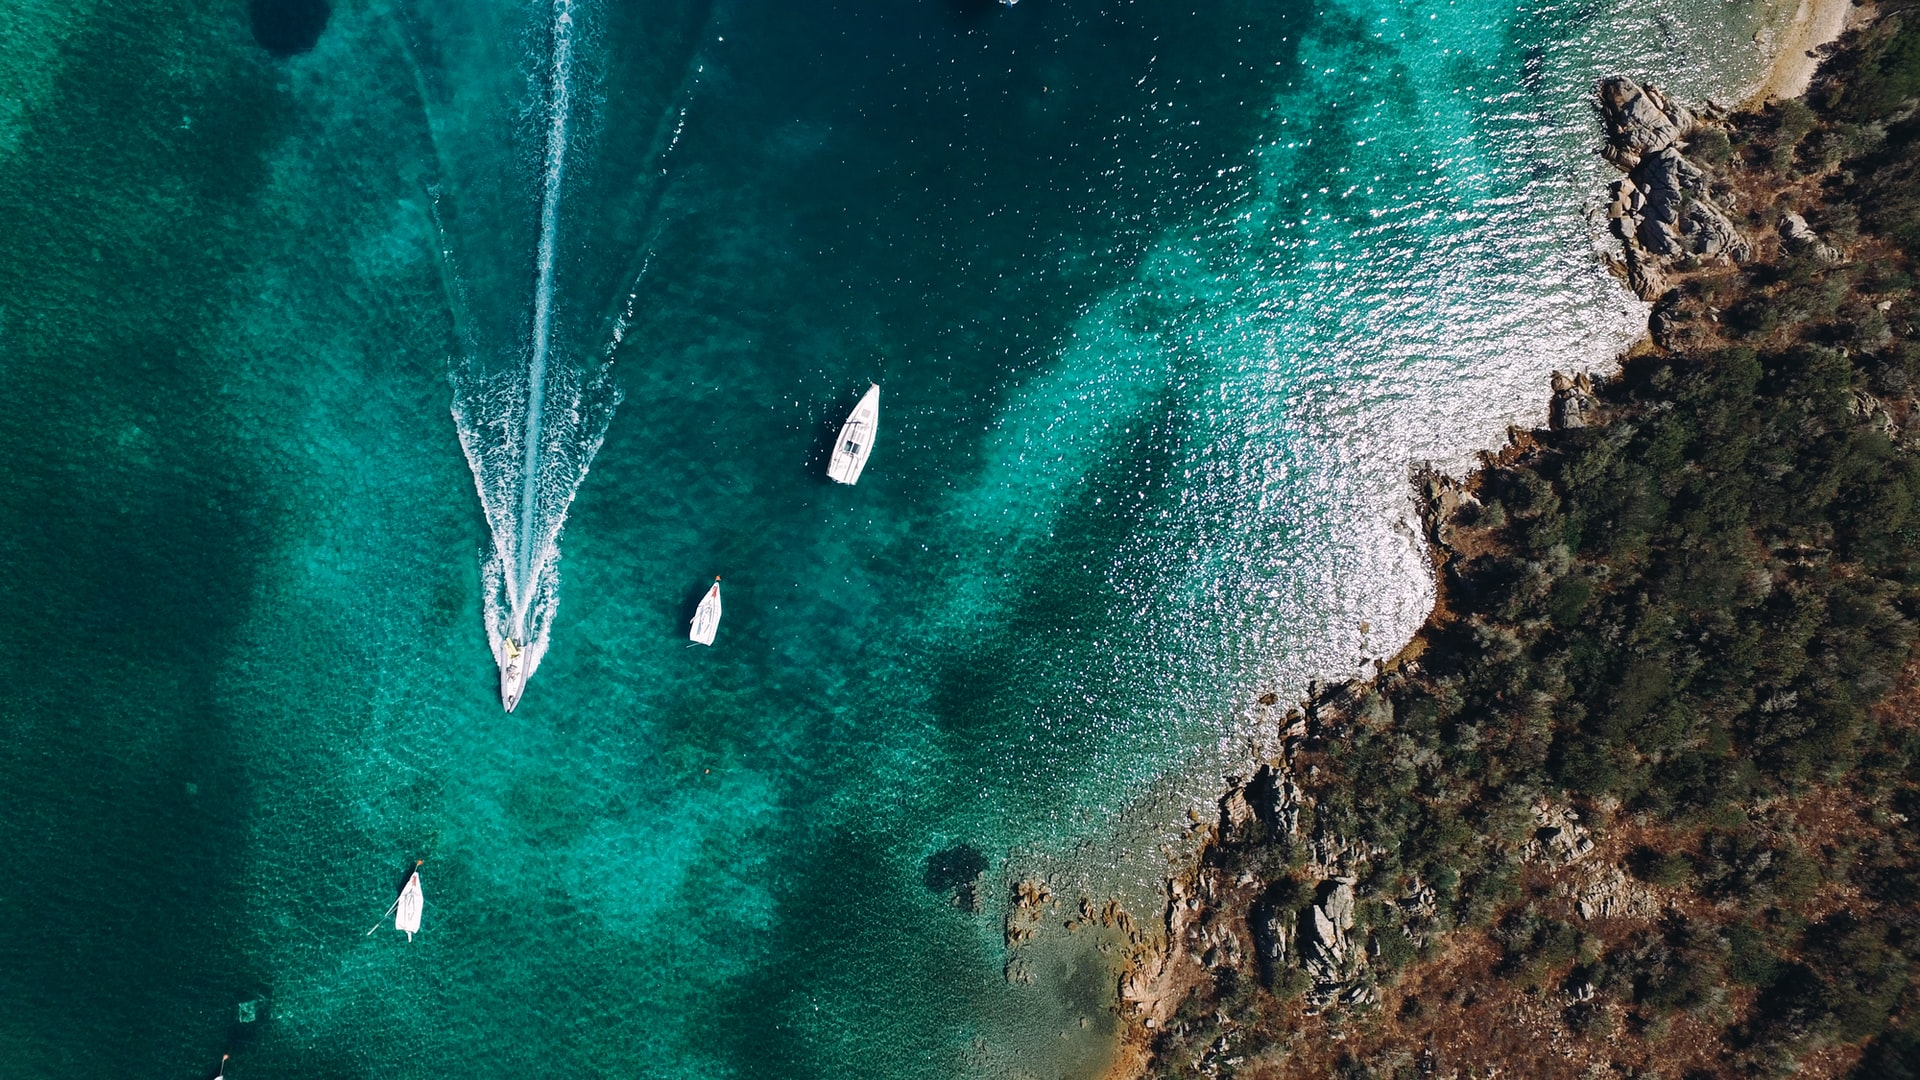 cove with boats, boats sailing through coves, Sardinia coves, Sardinia hidden coves, best beaches in sardinia, beaches in sardinia